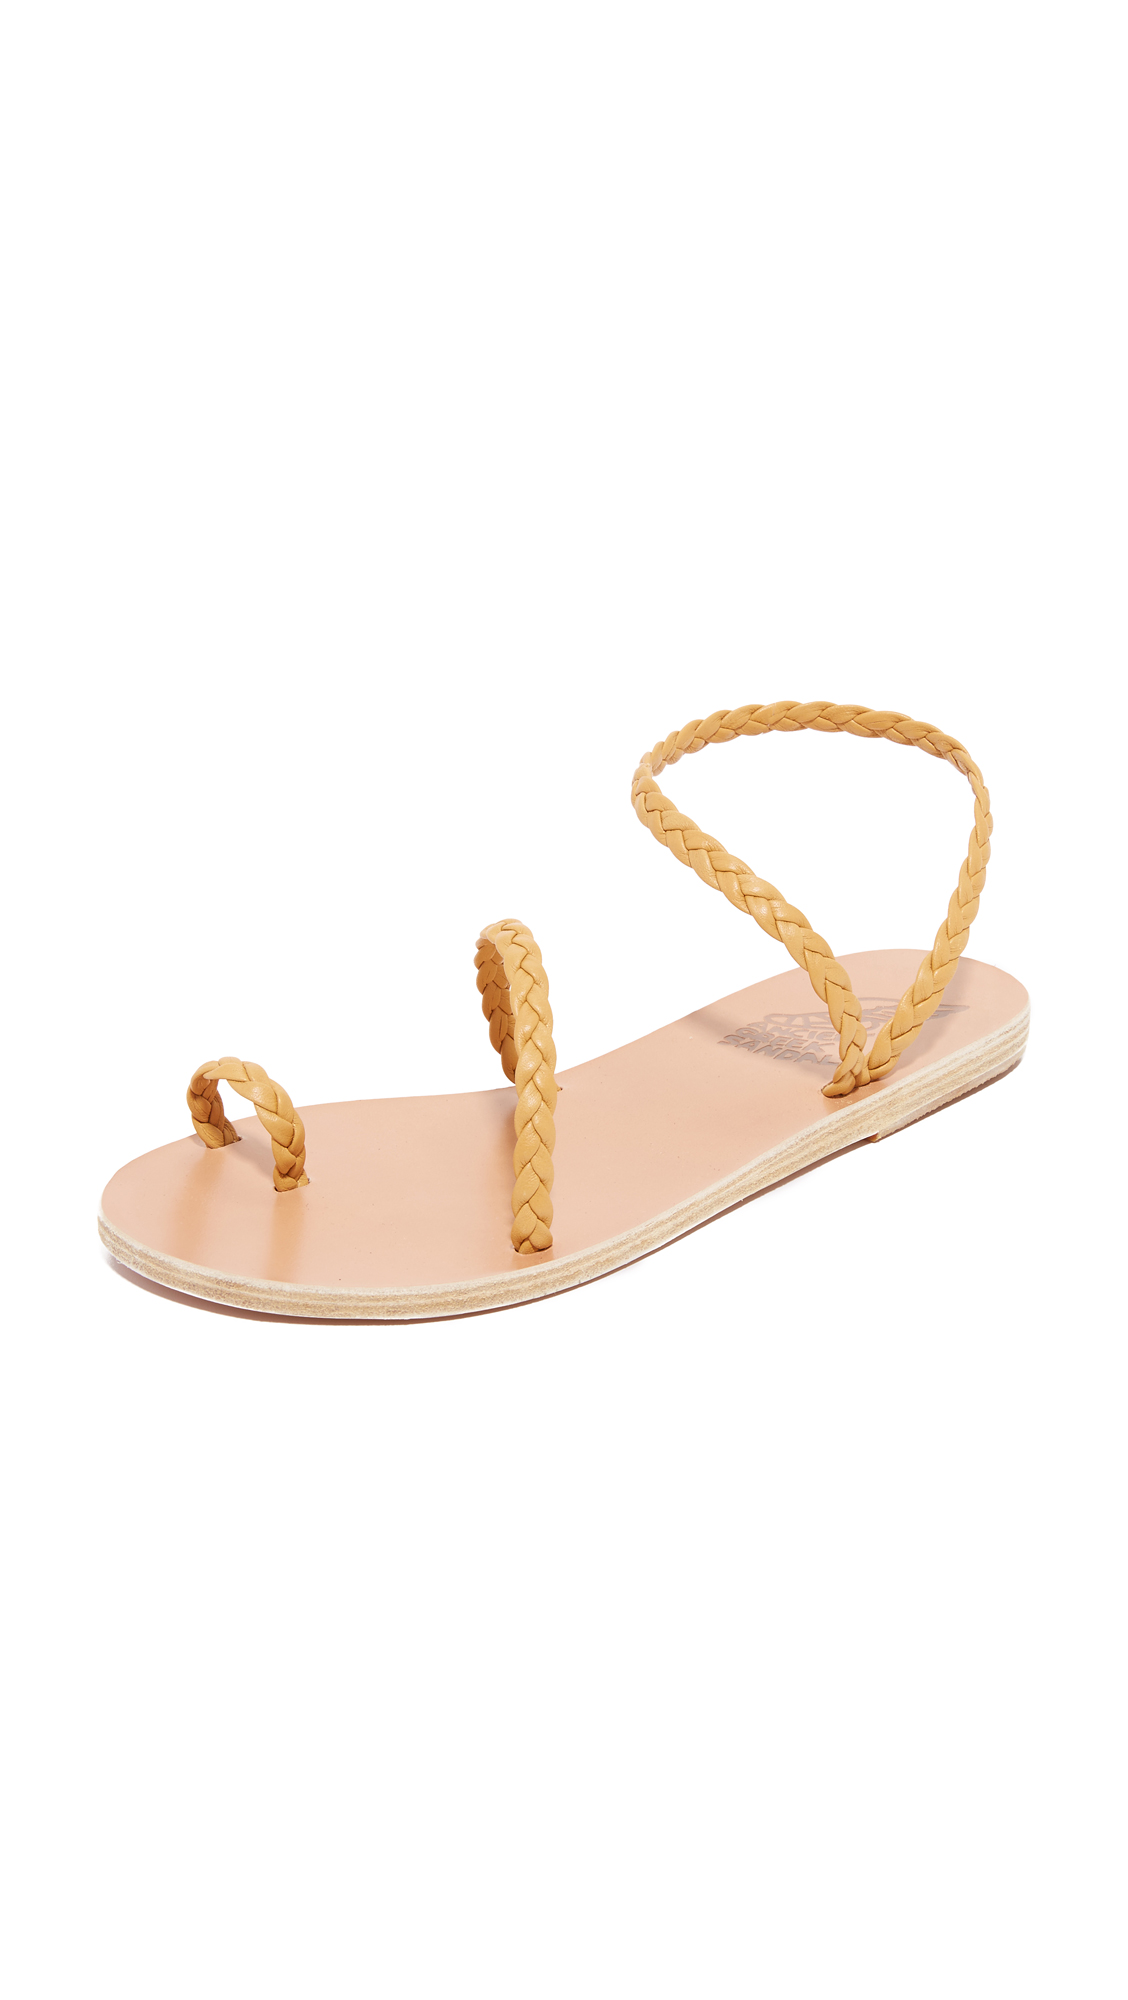 Ancient Greek Sandals Eleftheria Sandals - Natural